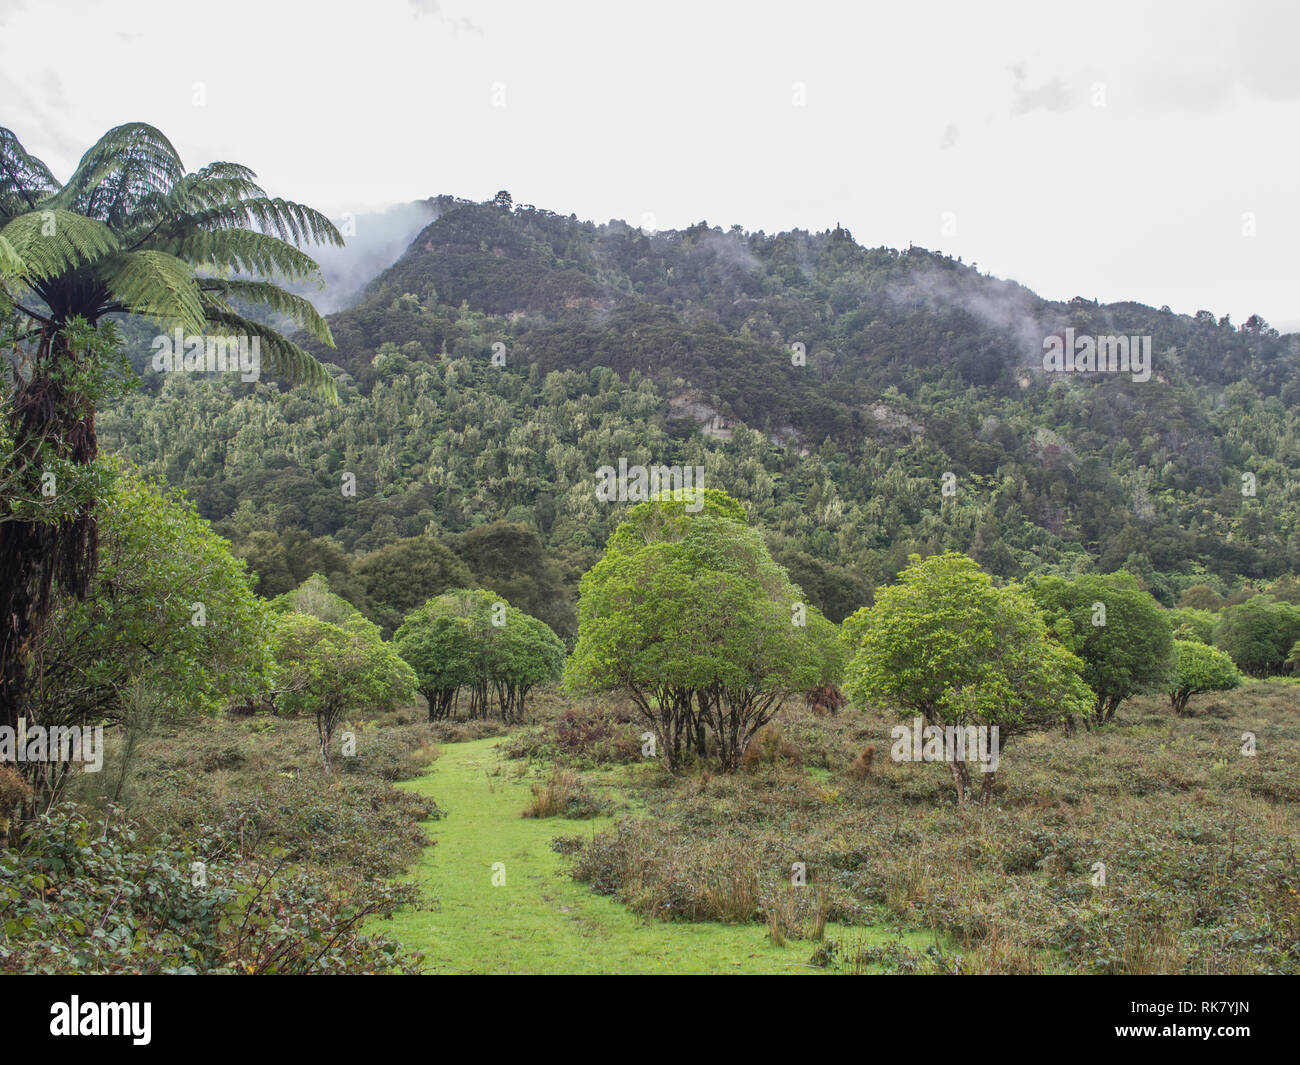 Grassy path through regenerating shrubland, mist rising after rain, native forest bush clad hills beyond,  Ahuahu Valley Whanganui River New Zealand - Stock Image